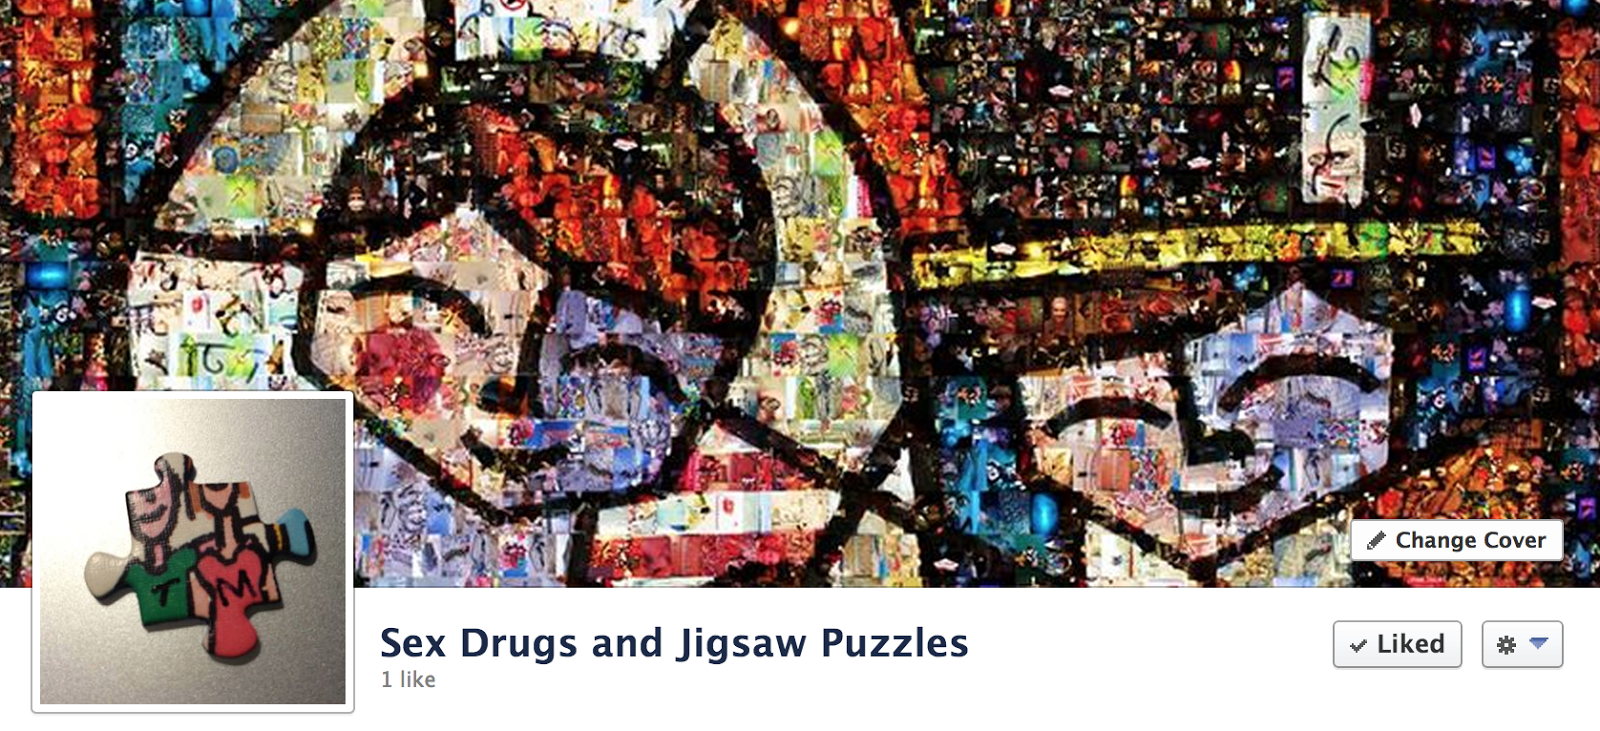 Sex Drugs and Jigsaw Puzzles: Facebook   Finally